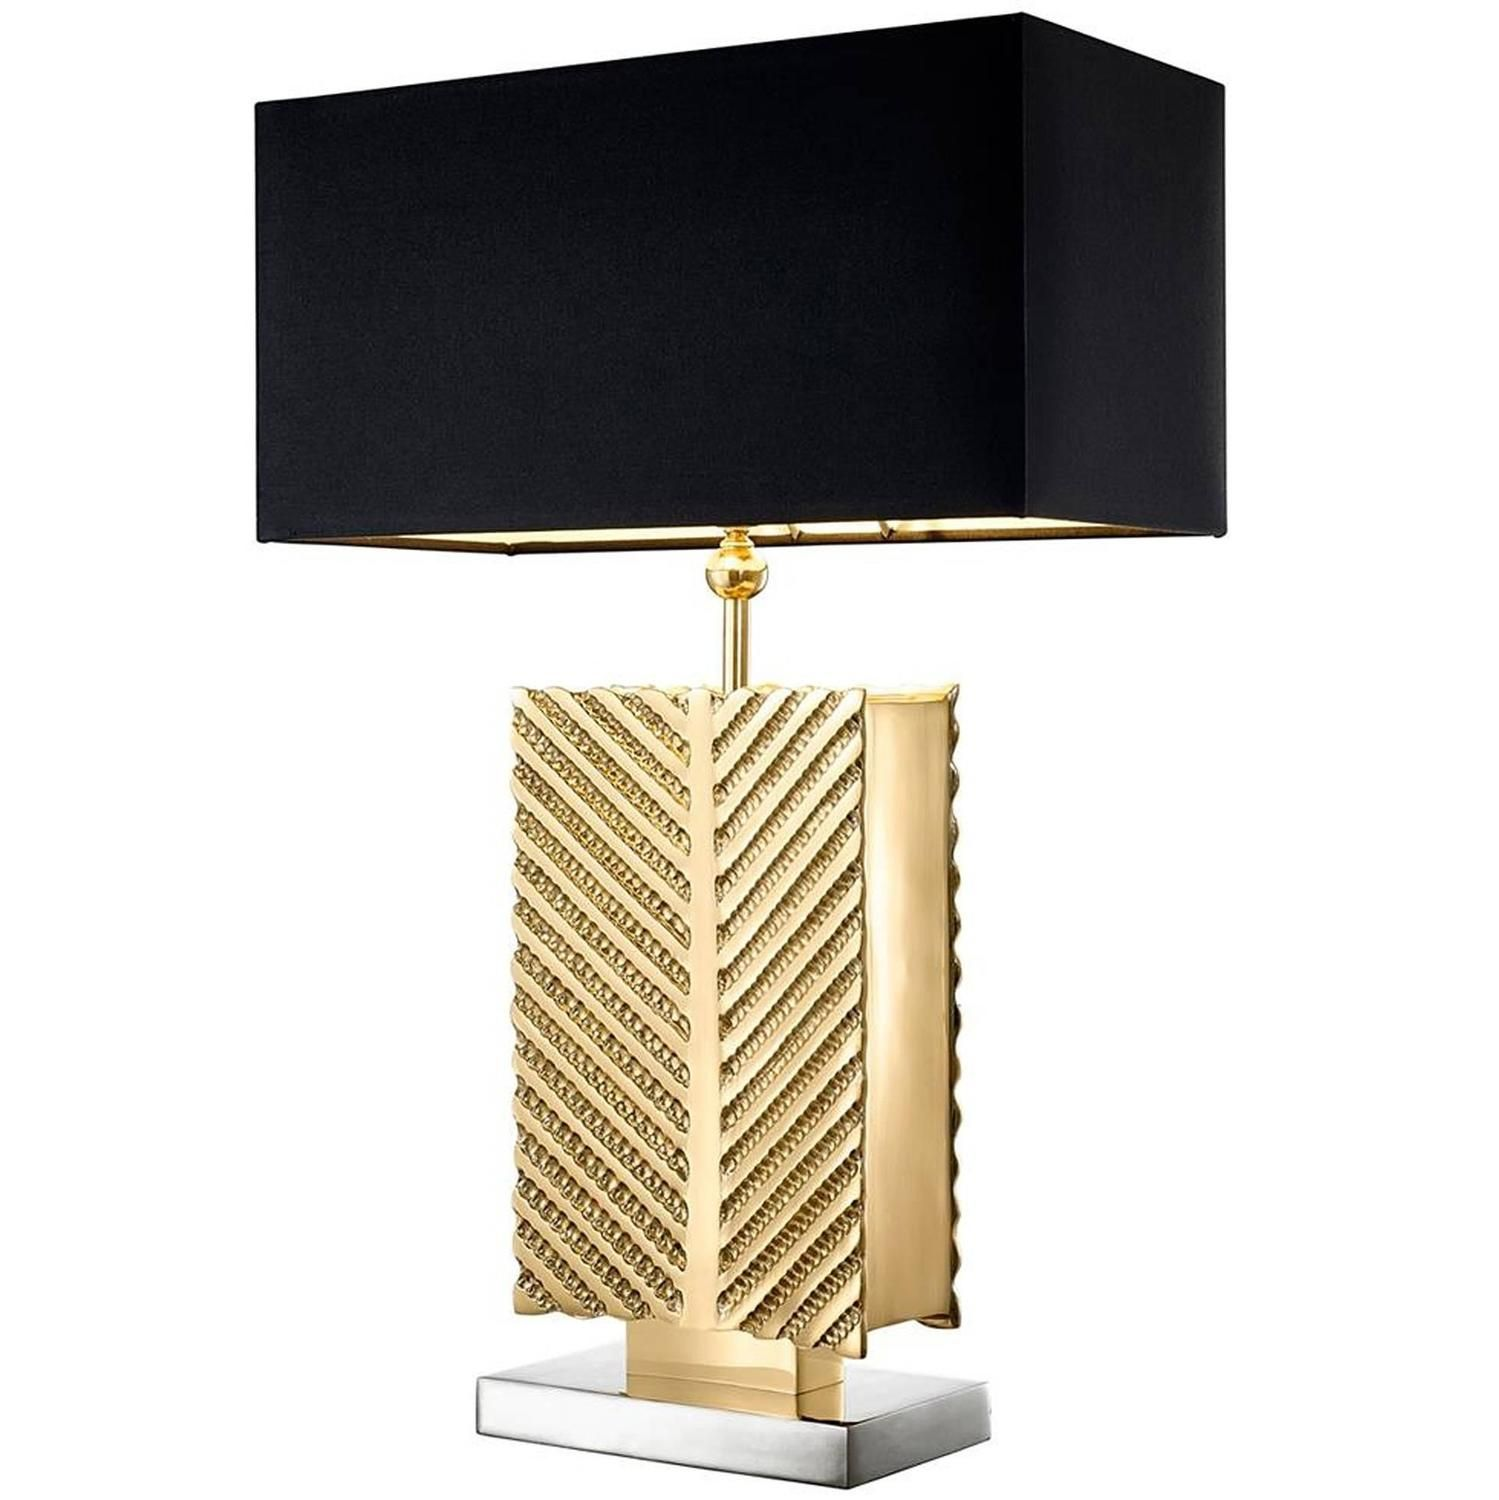 Opera Table Lamp In Polished Brass And Nickel Finish Gold Table Lamp Rectangular Table Lamp Nickel Table Lamps